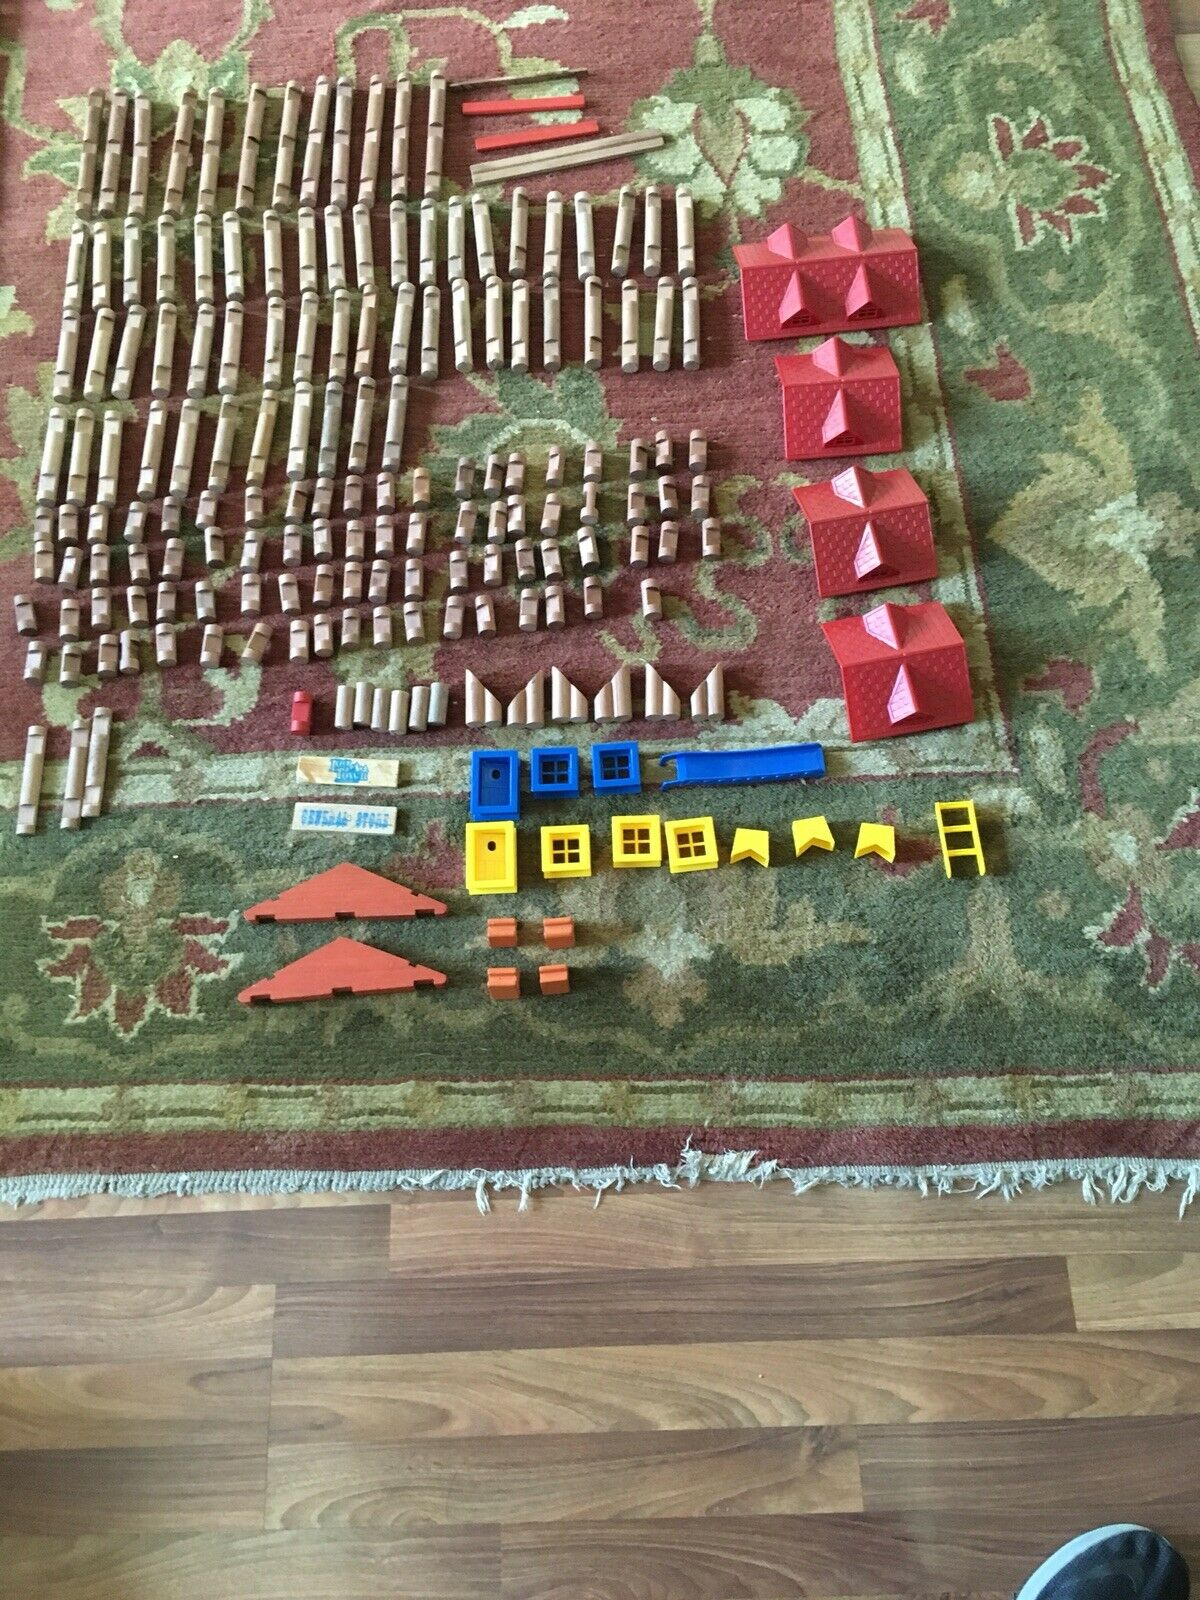 Lincoln Logs Set 184 Pieces-Includes Pieces-Includes Pieces-Includes Windows, Doors, Sign Holders, Slide & More 5c1a6b